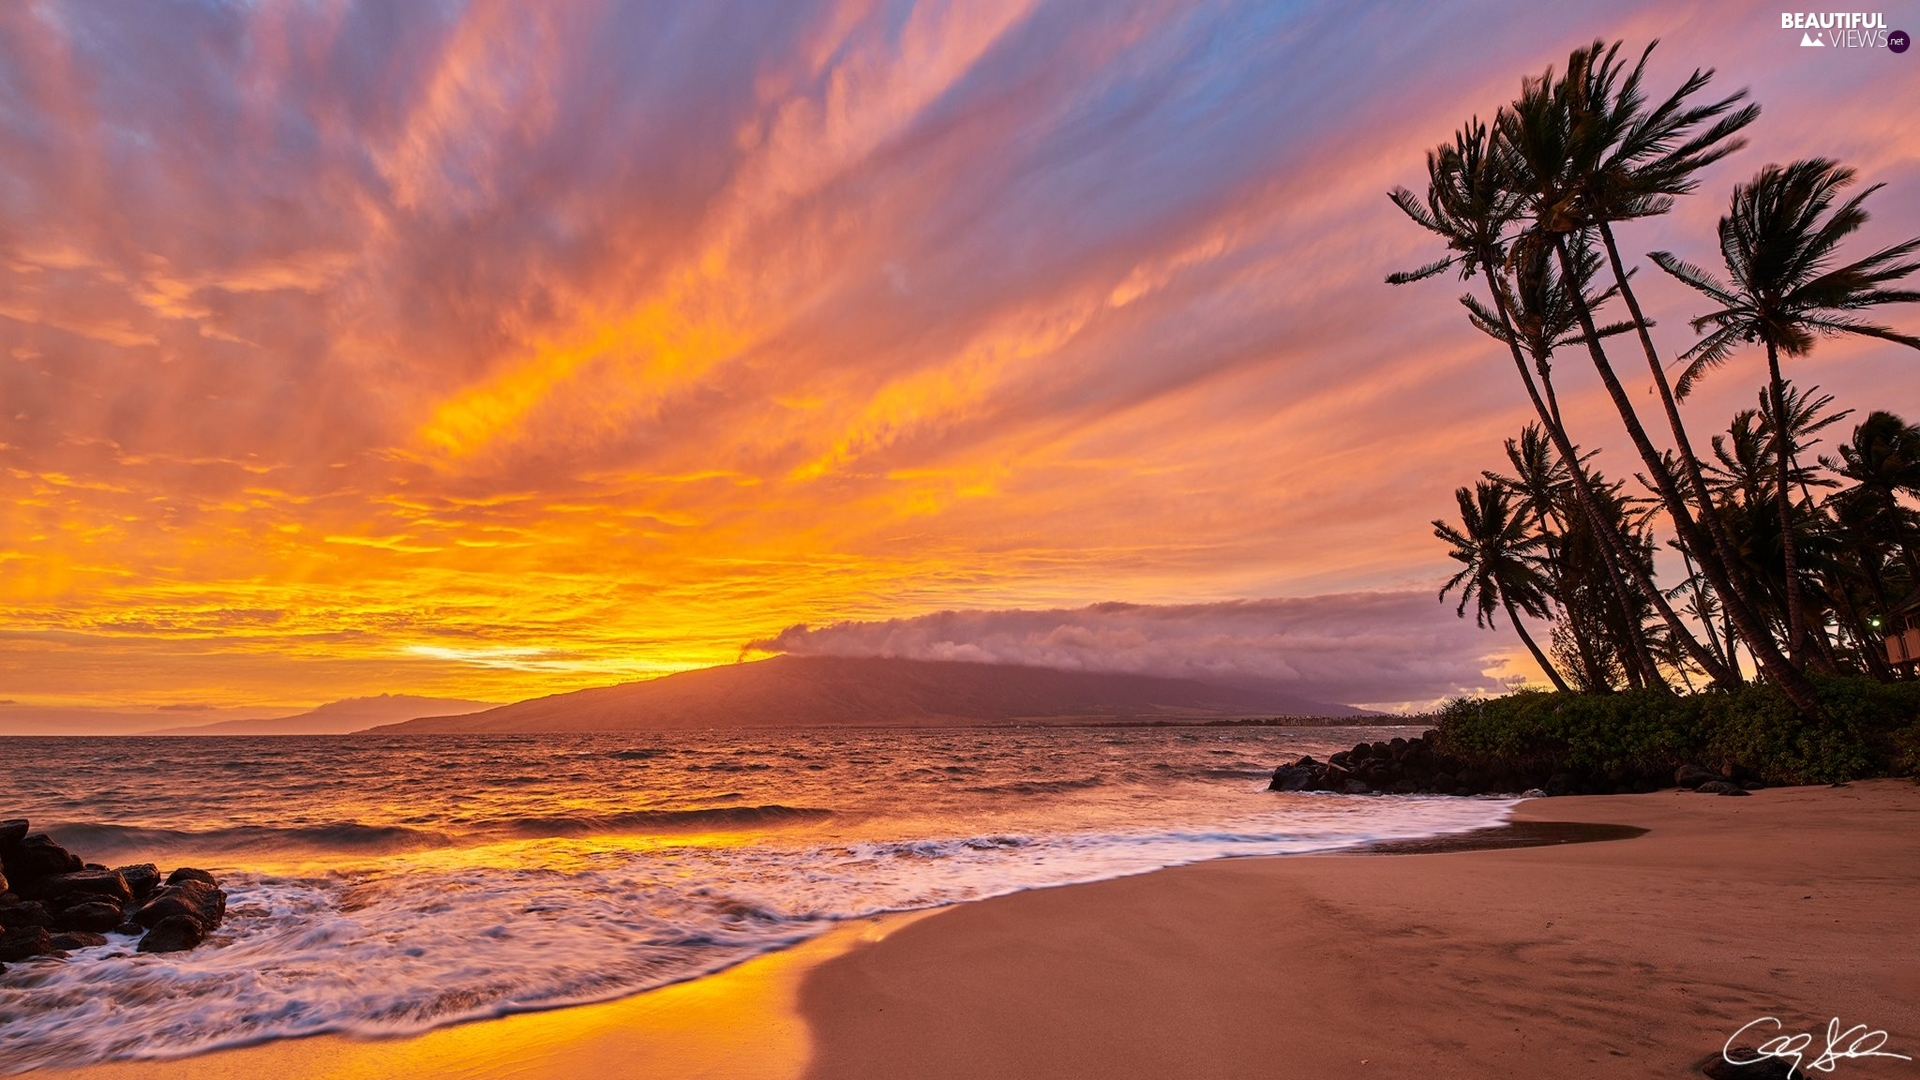 sea, Aloha State Hawaje, Great Sunsets, Beaches, Palms, Maui Island